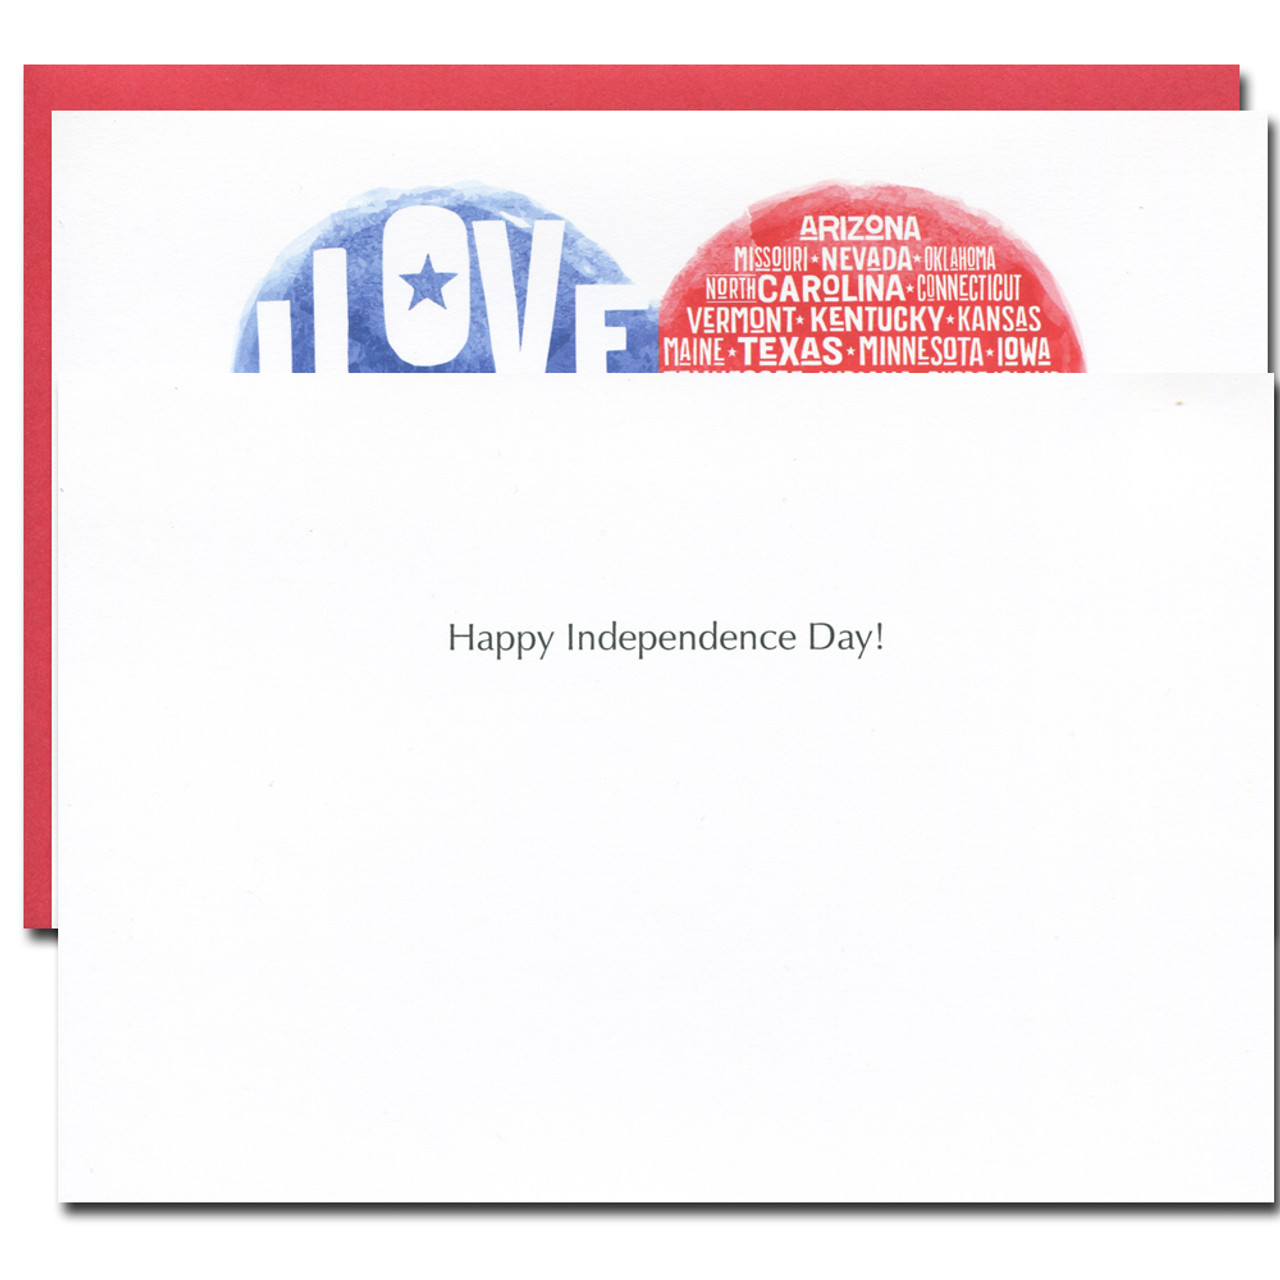 July 4th: I Love My Country - box of 10 cards & envelopes